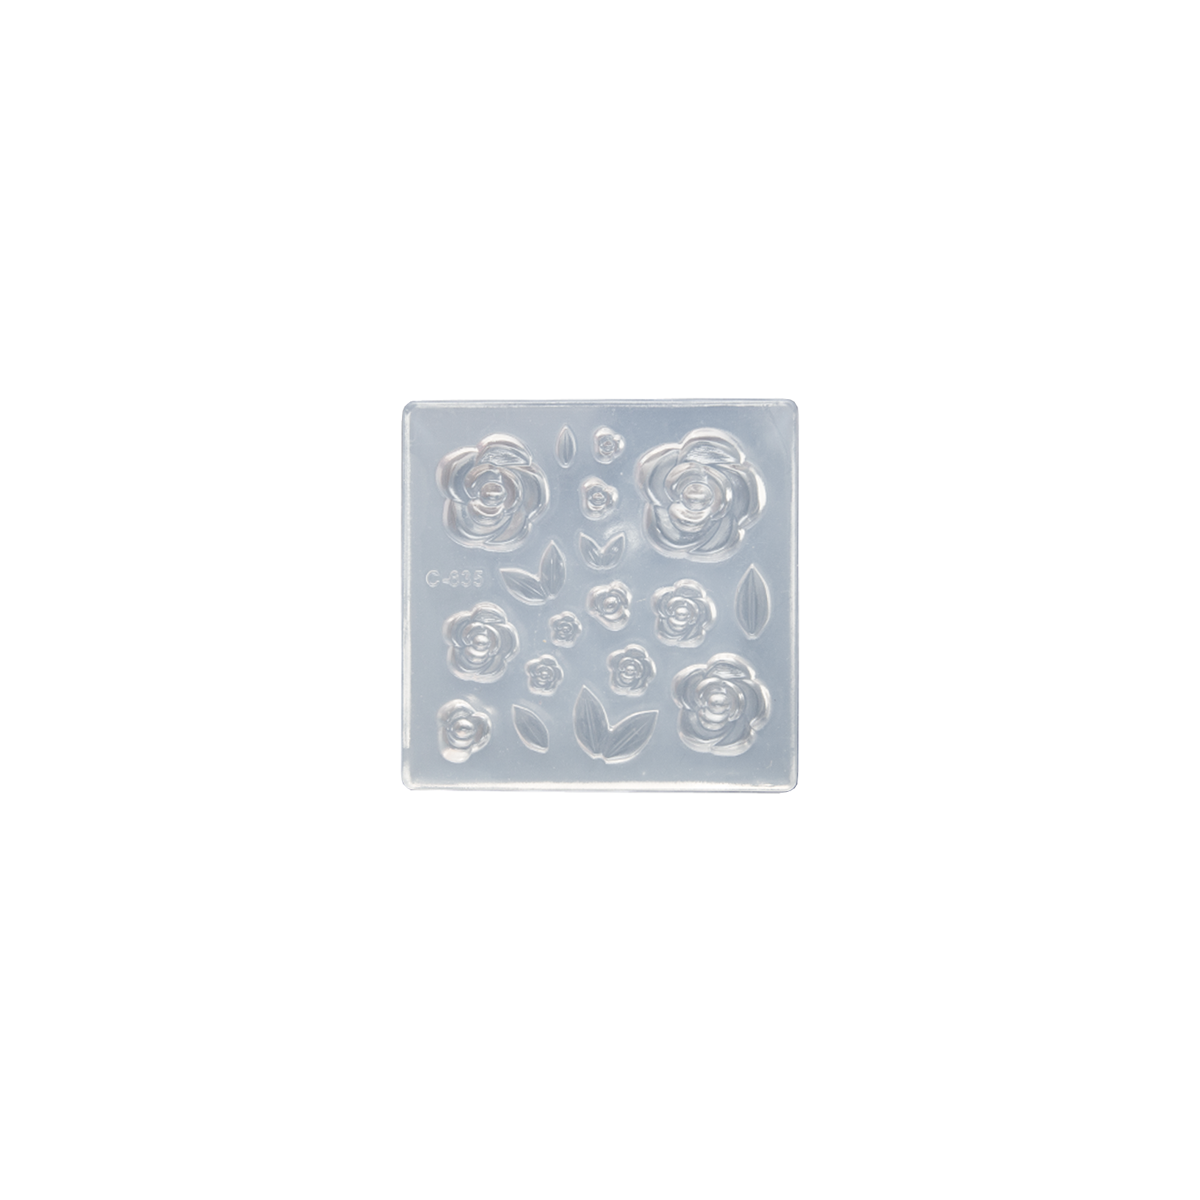 Silicone Mould - Rose Flowers and Leaves